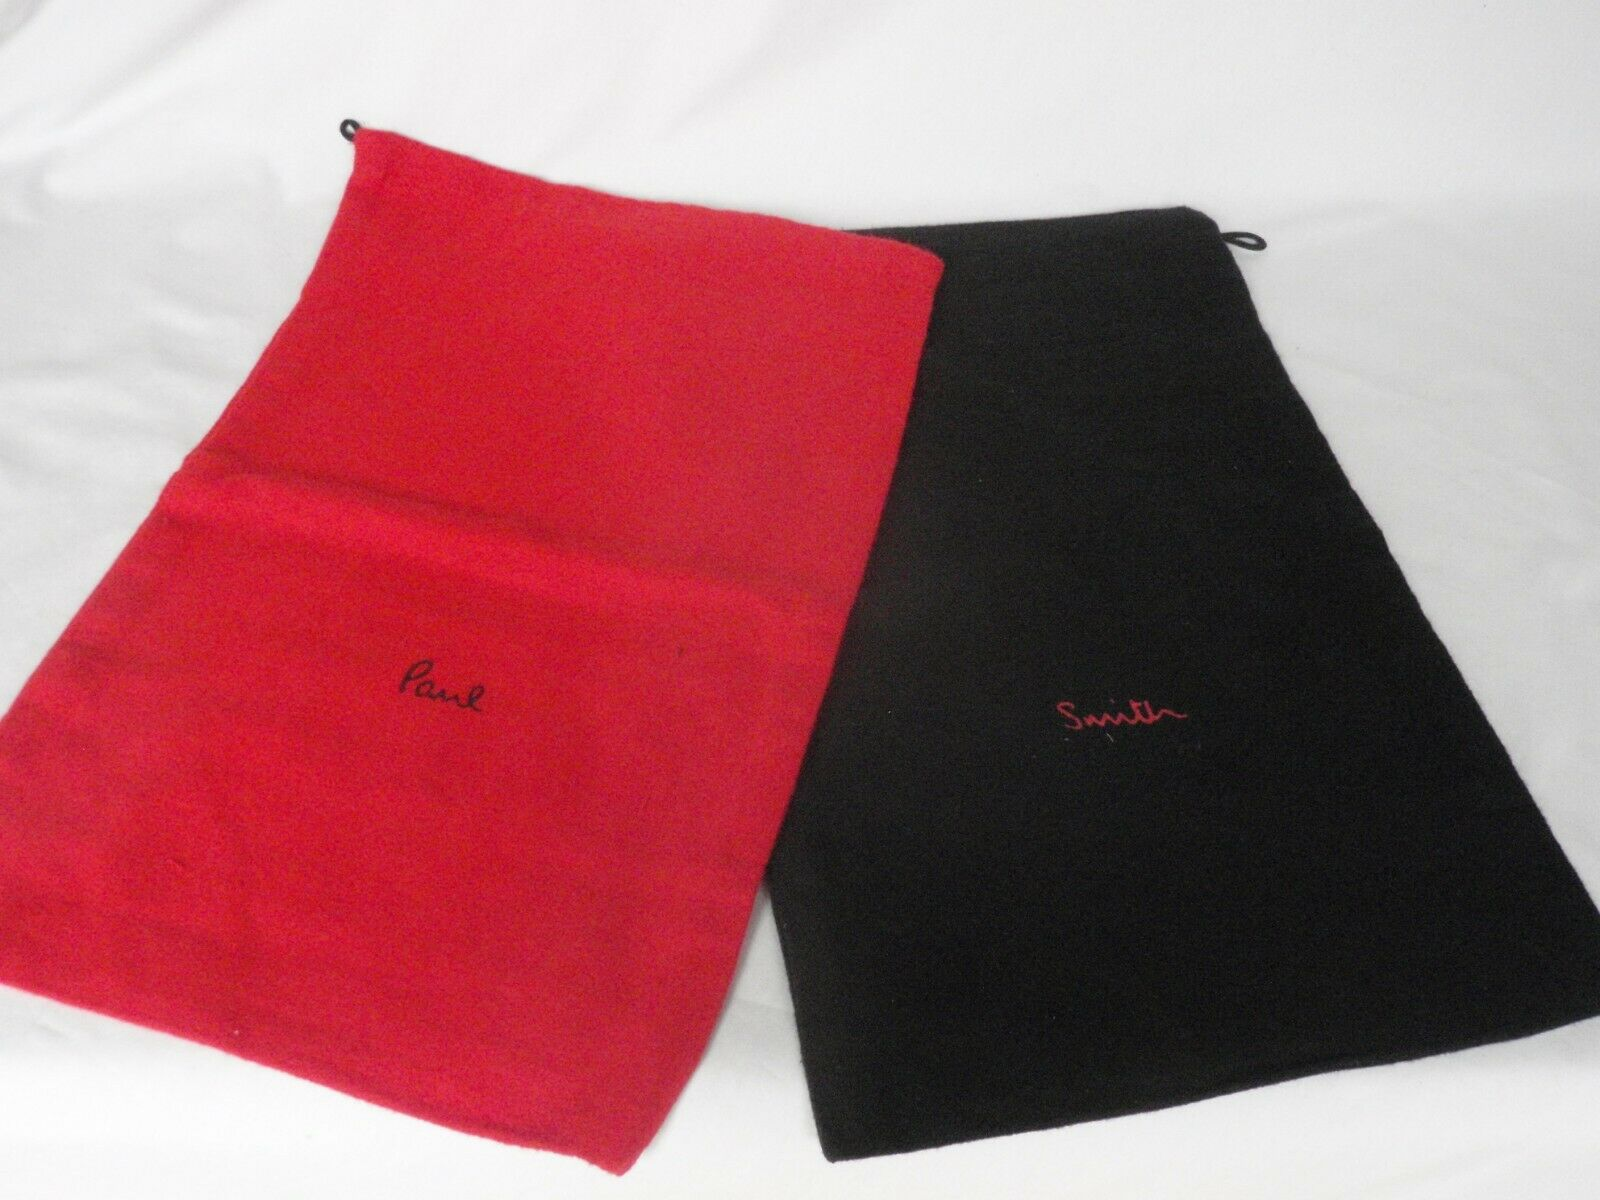 Paul Smith Large Black & Red Cotton Dustbag Sleeper Shoe Bags 1 Pair